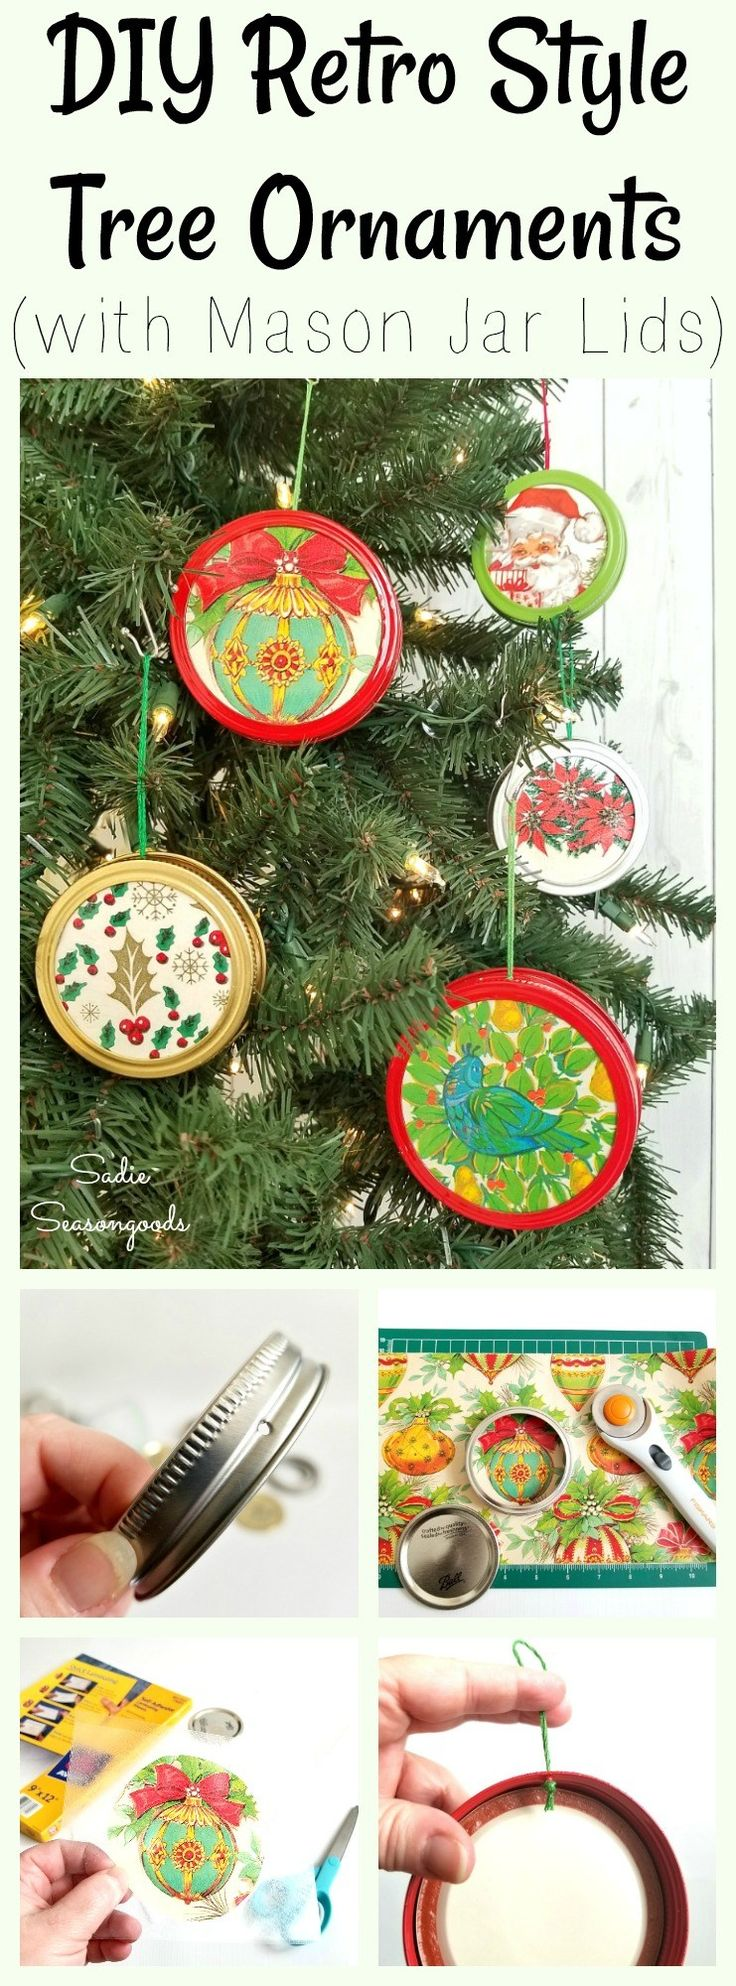 576 best Vintage Christmas - Kitschmas images on Pinterest | La la ...